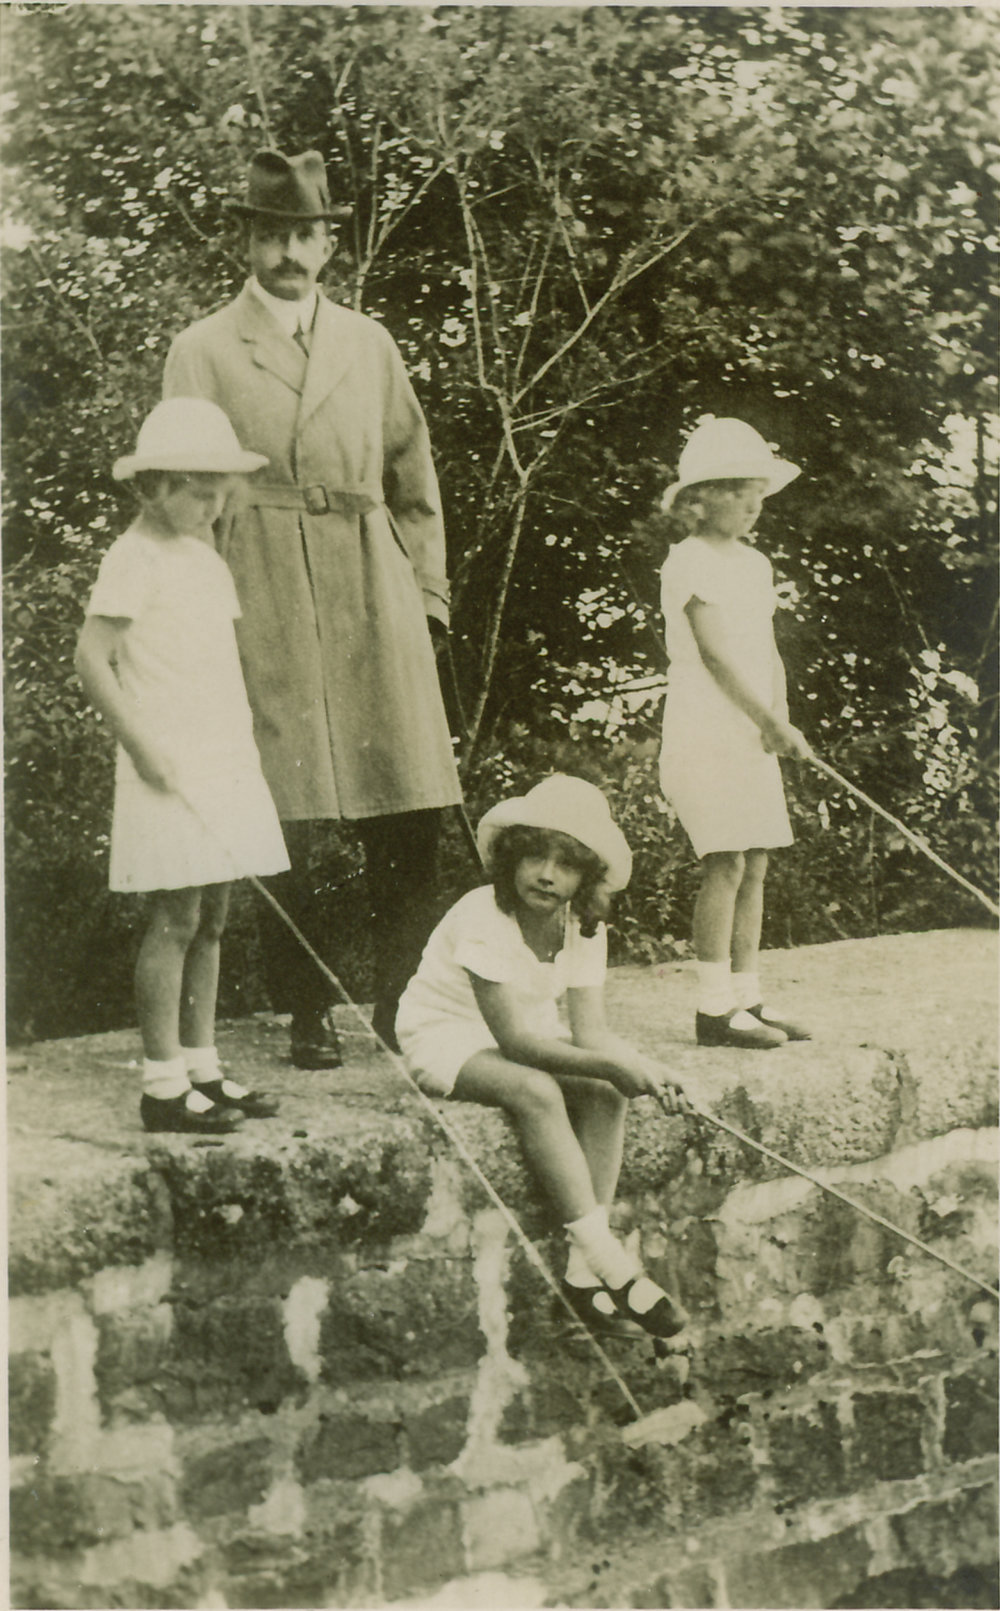 Emperor Karl fishing with three of his children during exile in Switzerland, ca. 1922